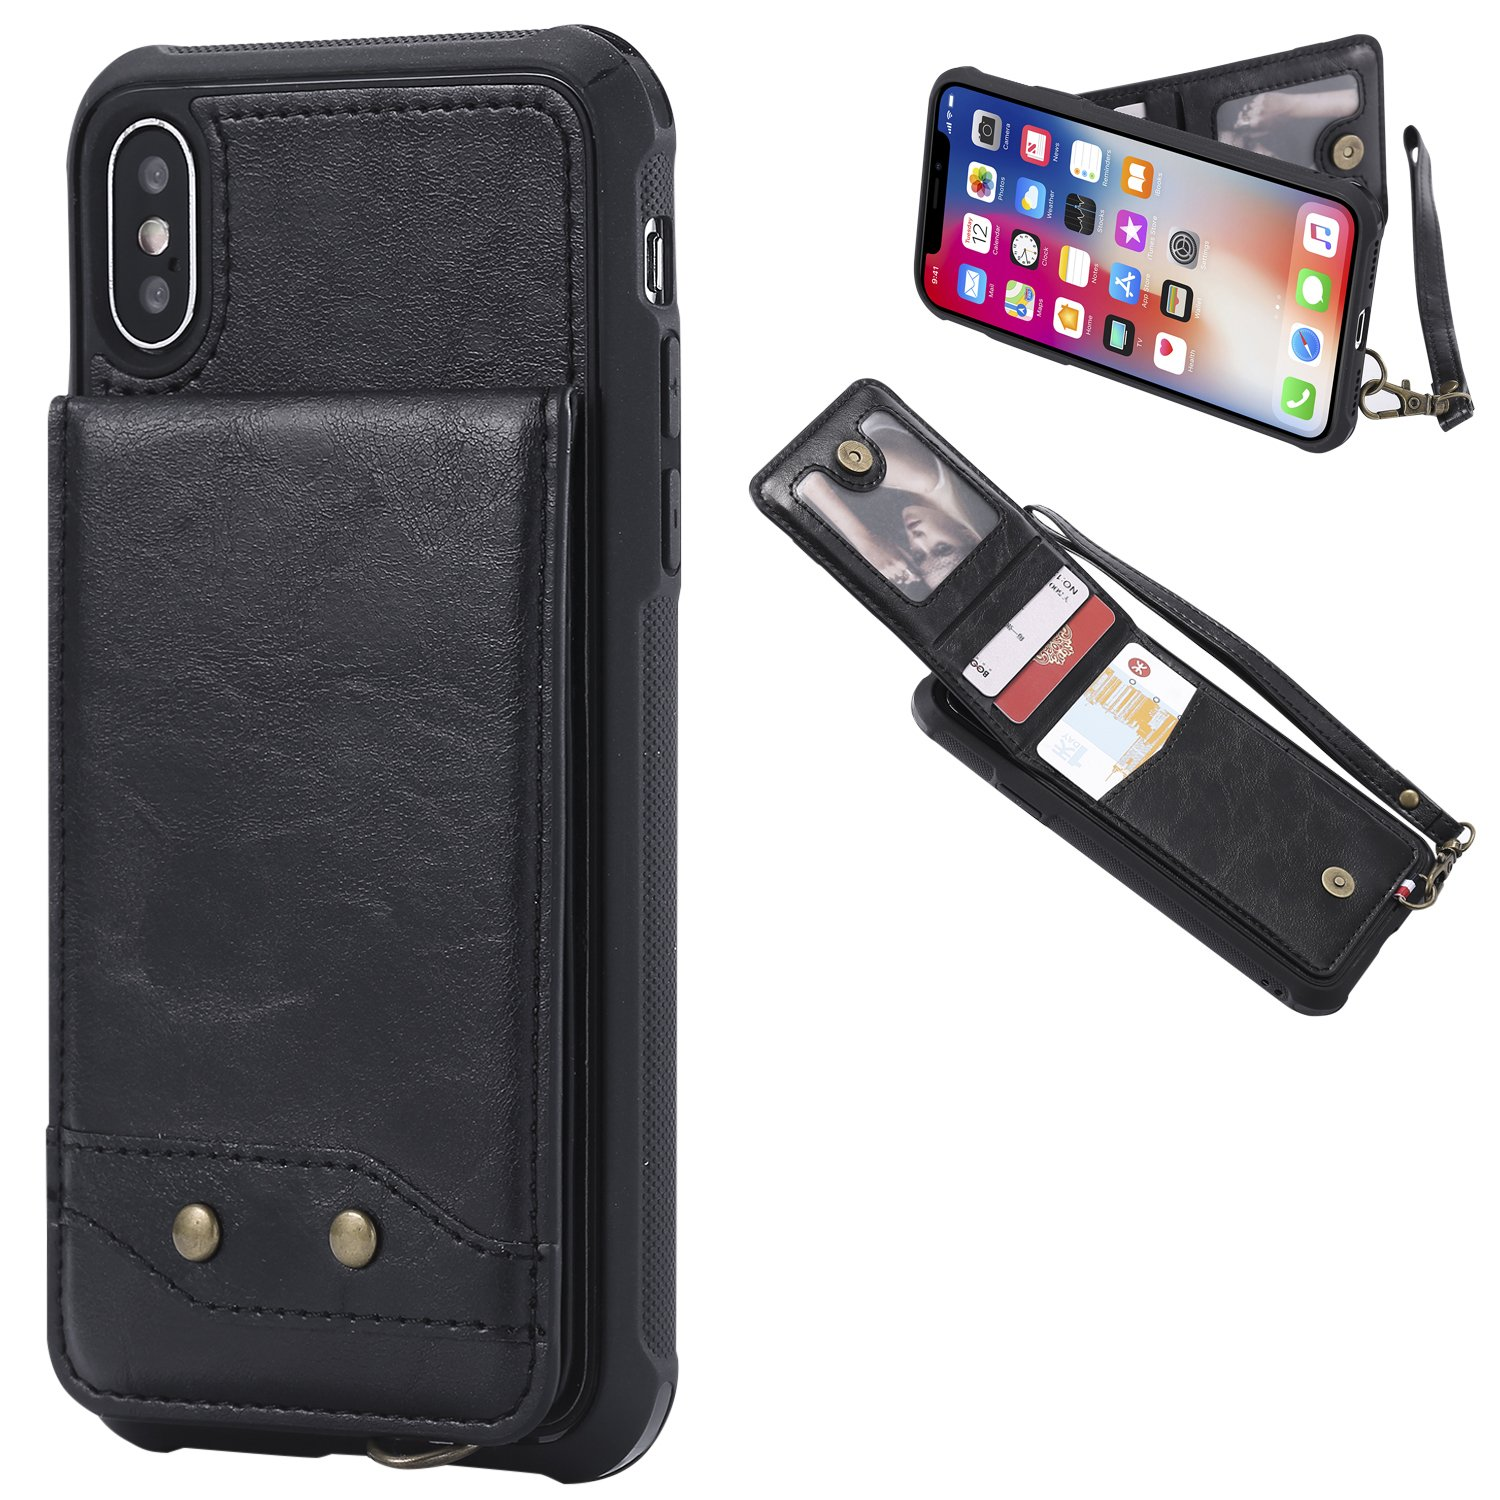 DAMONDY iPhone X Case, Luxury Wallet Purse Card Holders Design Cover Soft Shockproof Bumper Flip Leather Kickstand Magnetic Clasp With Wrist Strap Case for Apple iPhone X (2017)-black